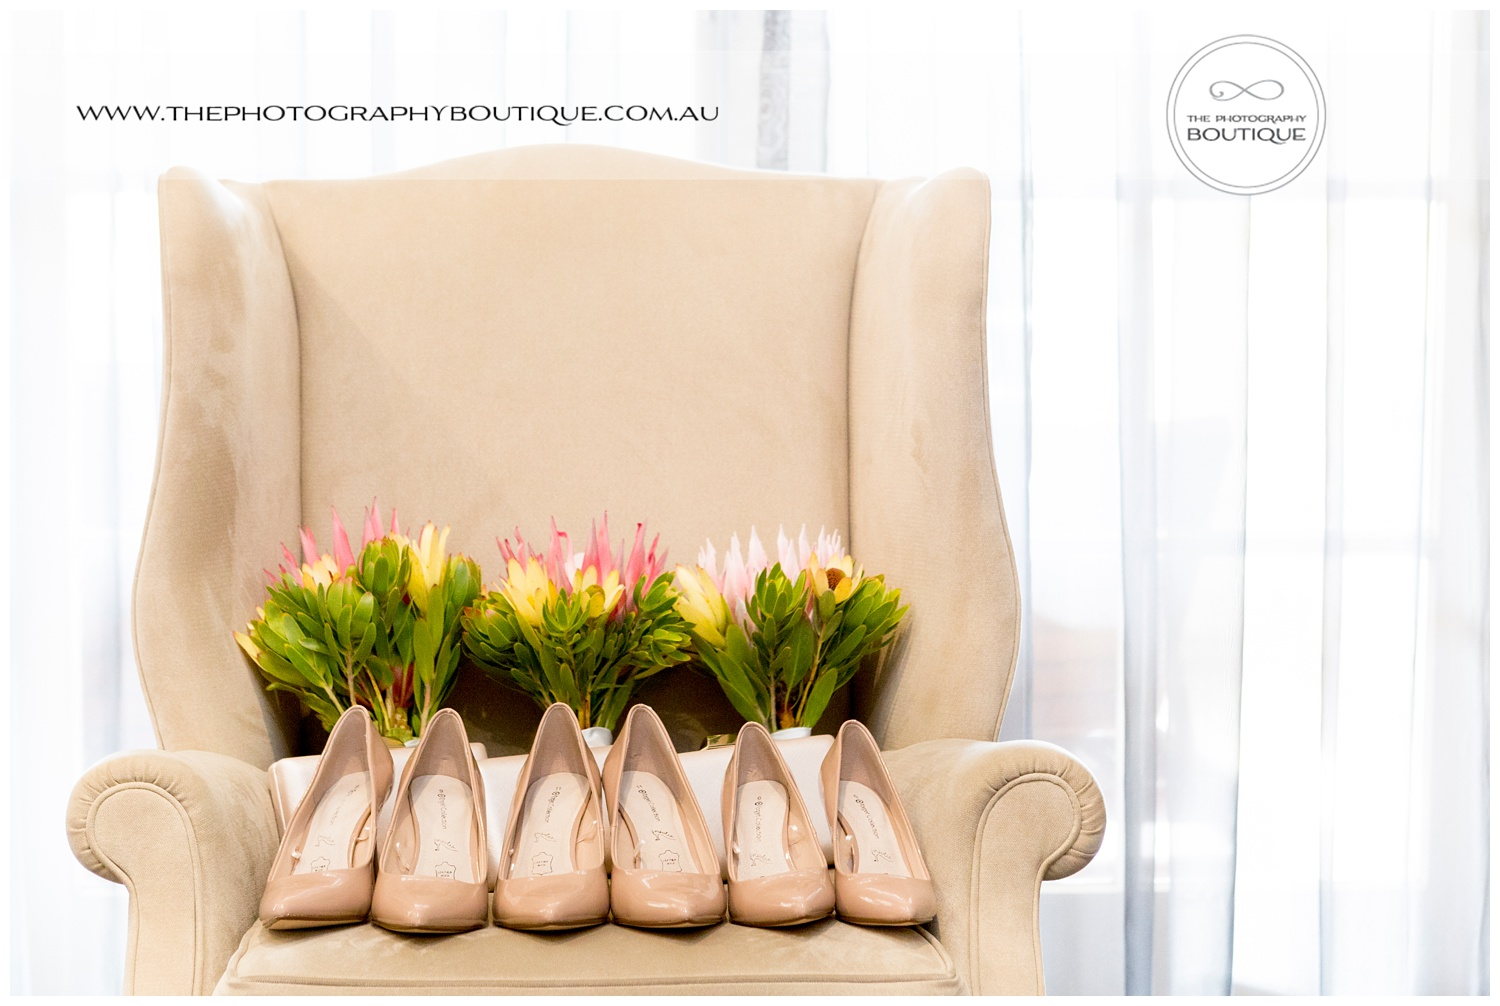 Bridesmaids shoes and protea bouquets